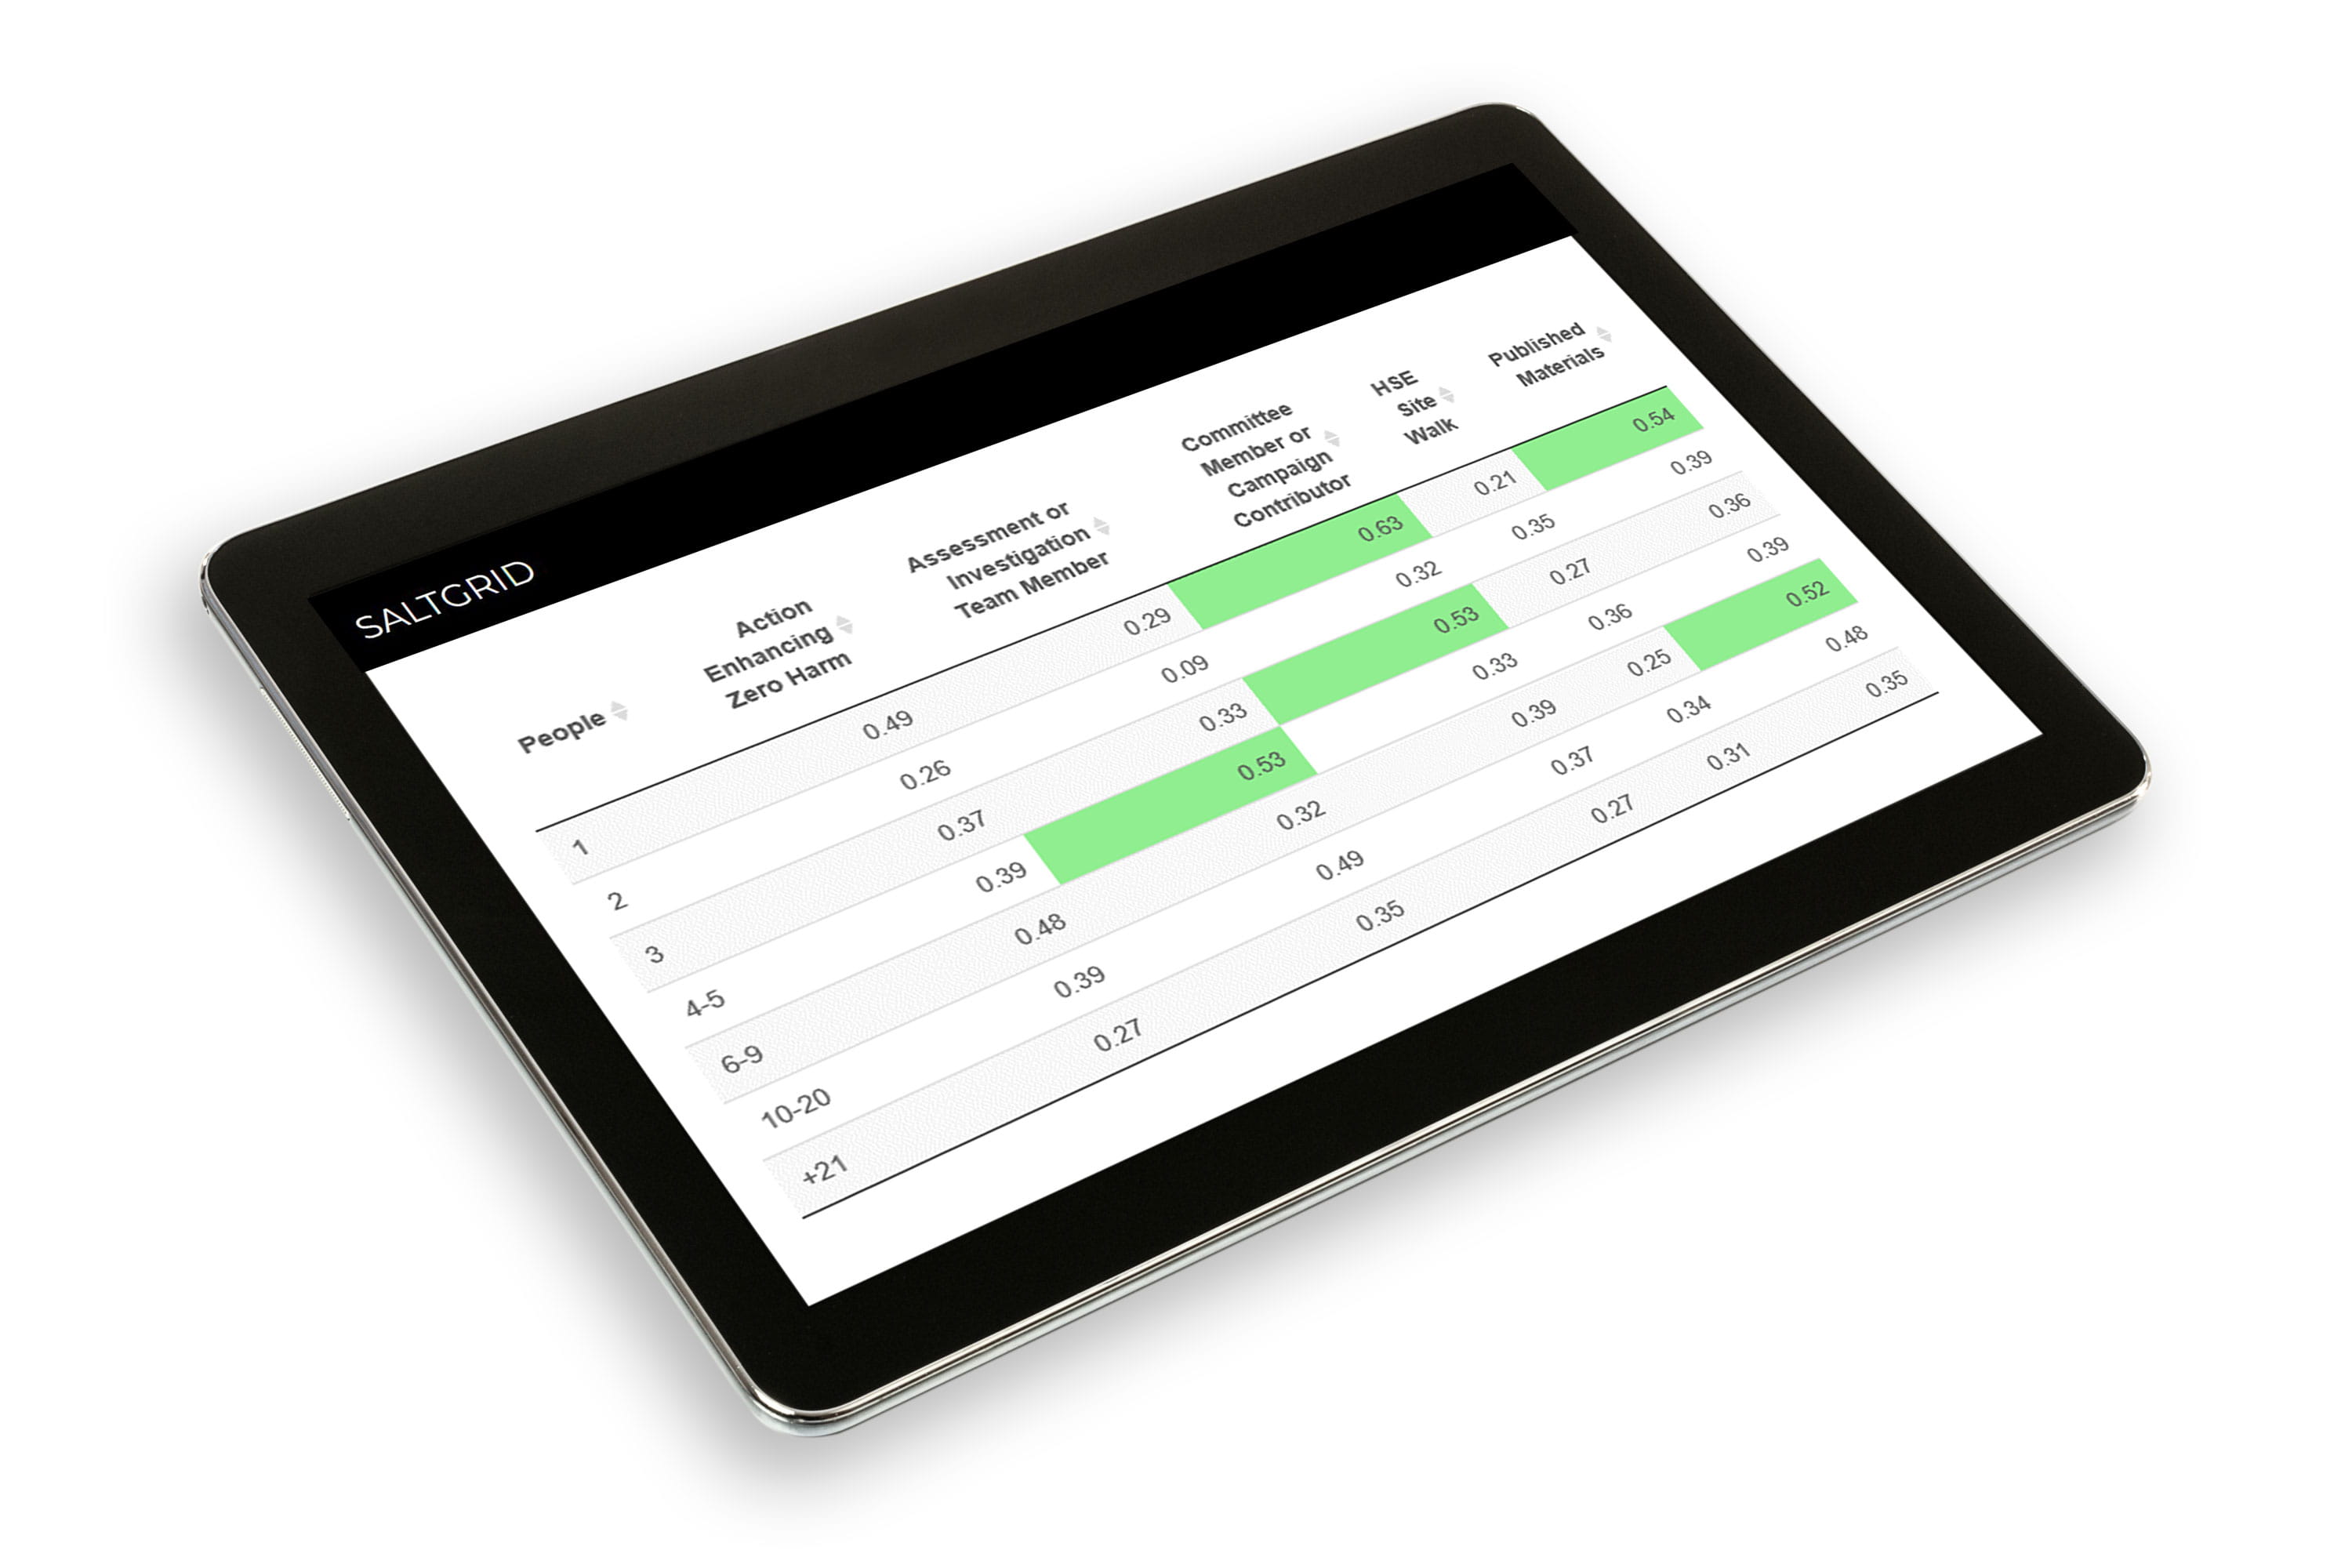 Tablet with SaltGrid screenshot